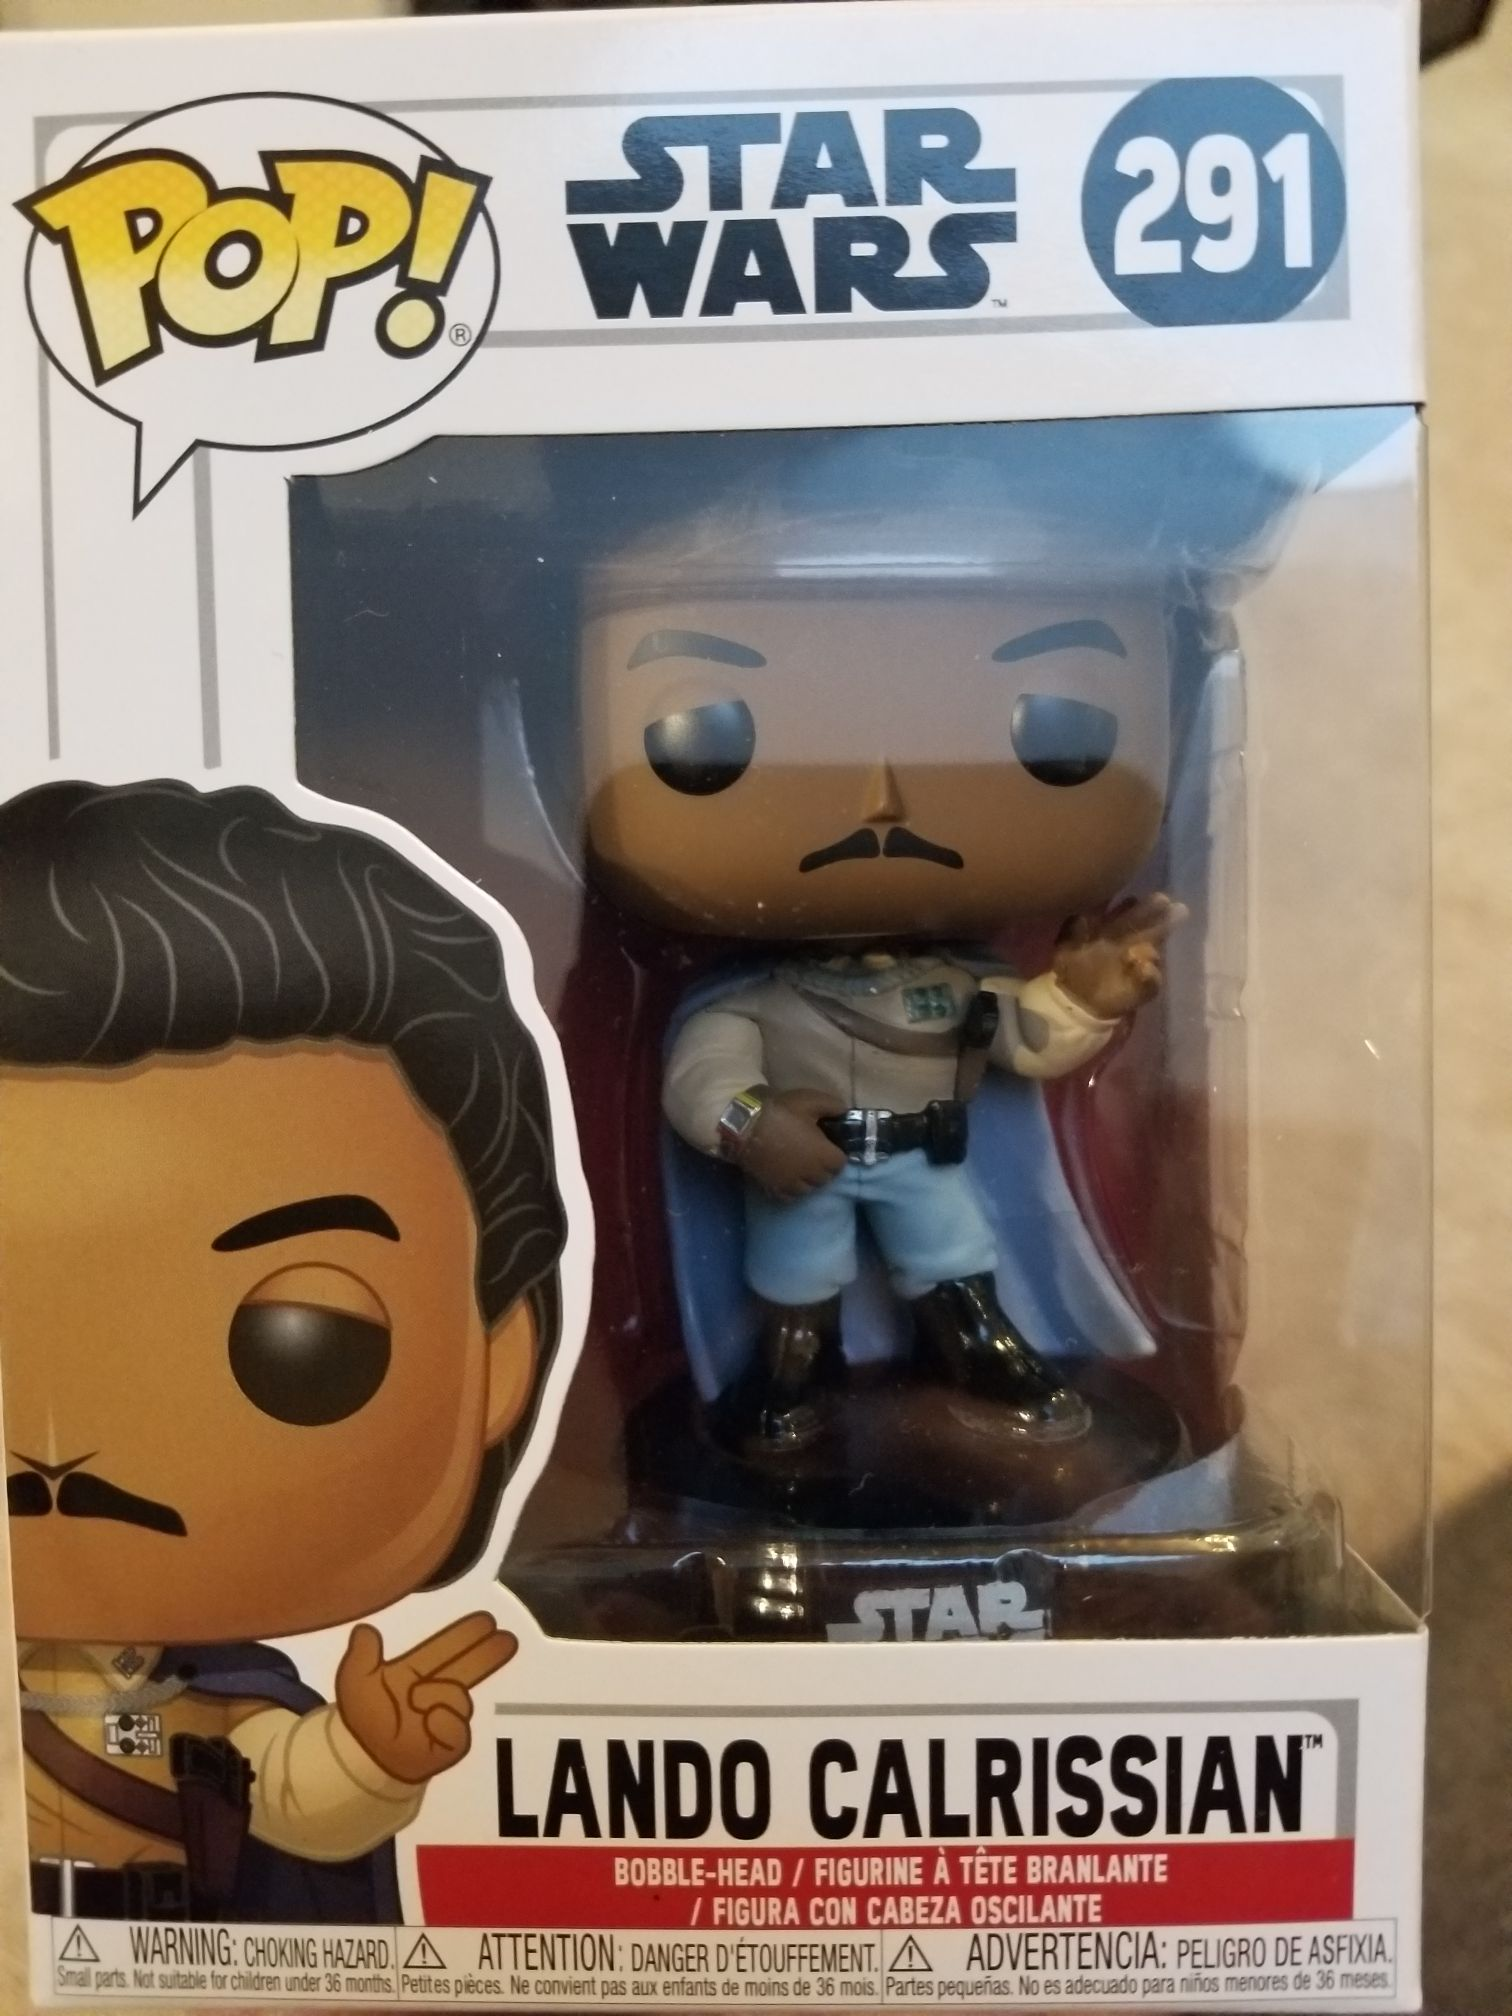 Lando Calrissian (General) Funko - POP! Star Wars (291) front image (front cover)